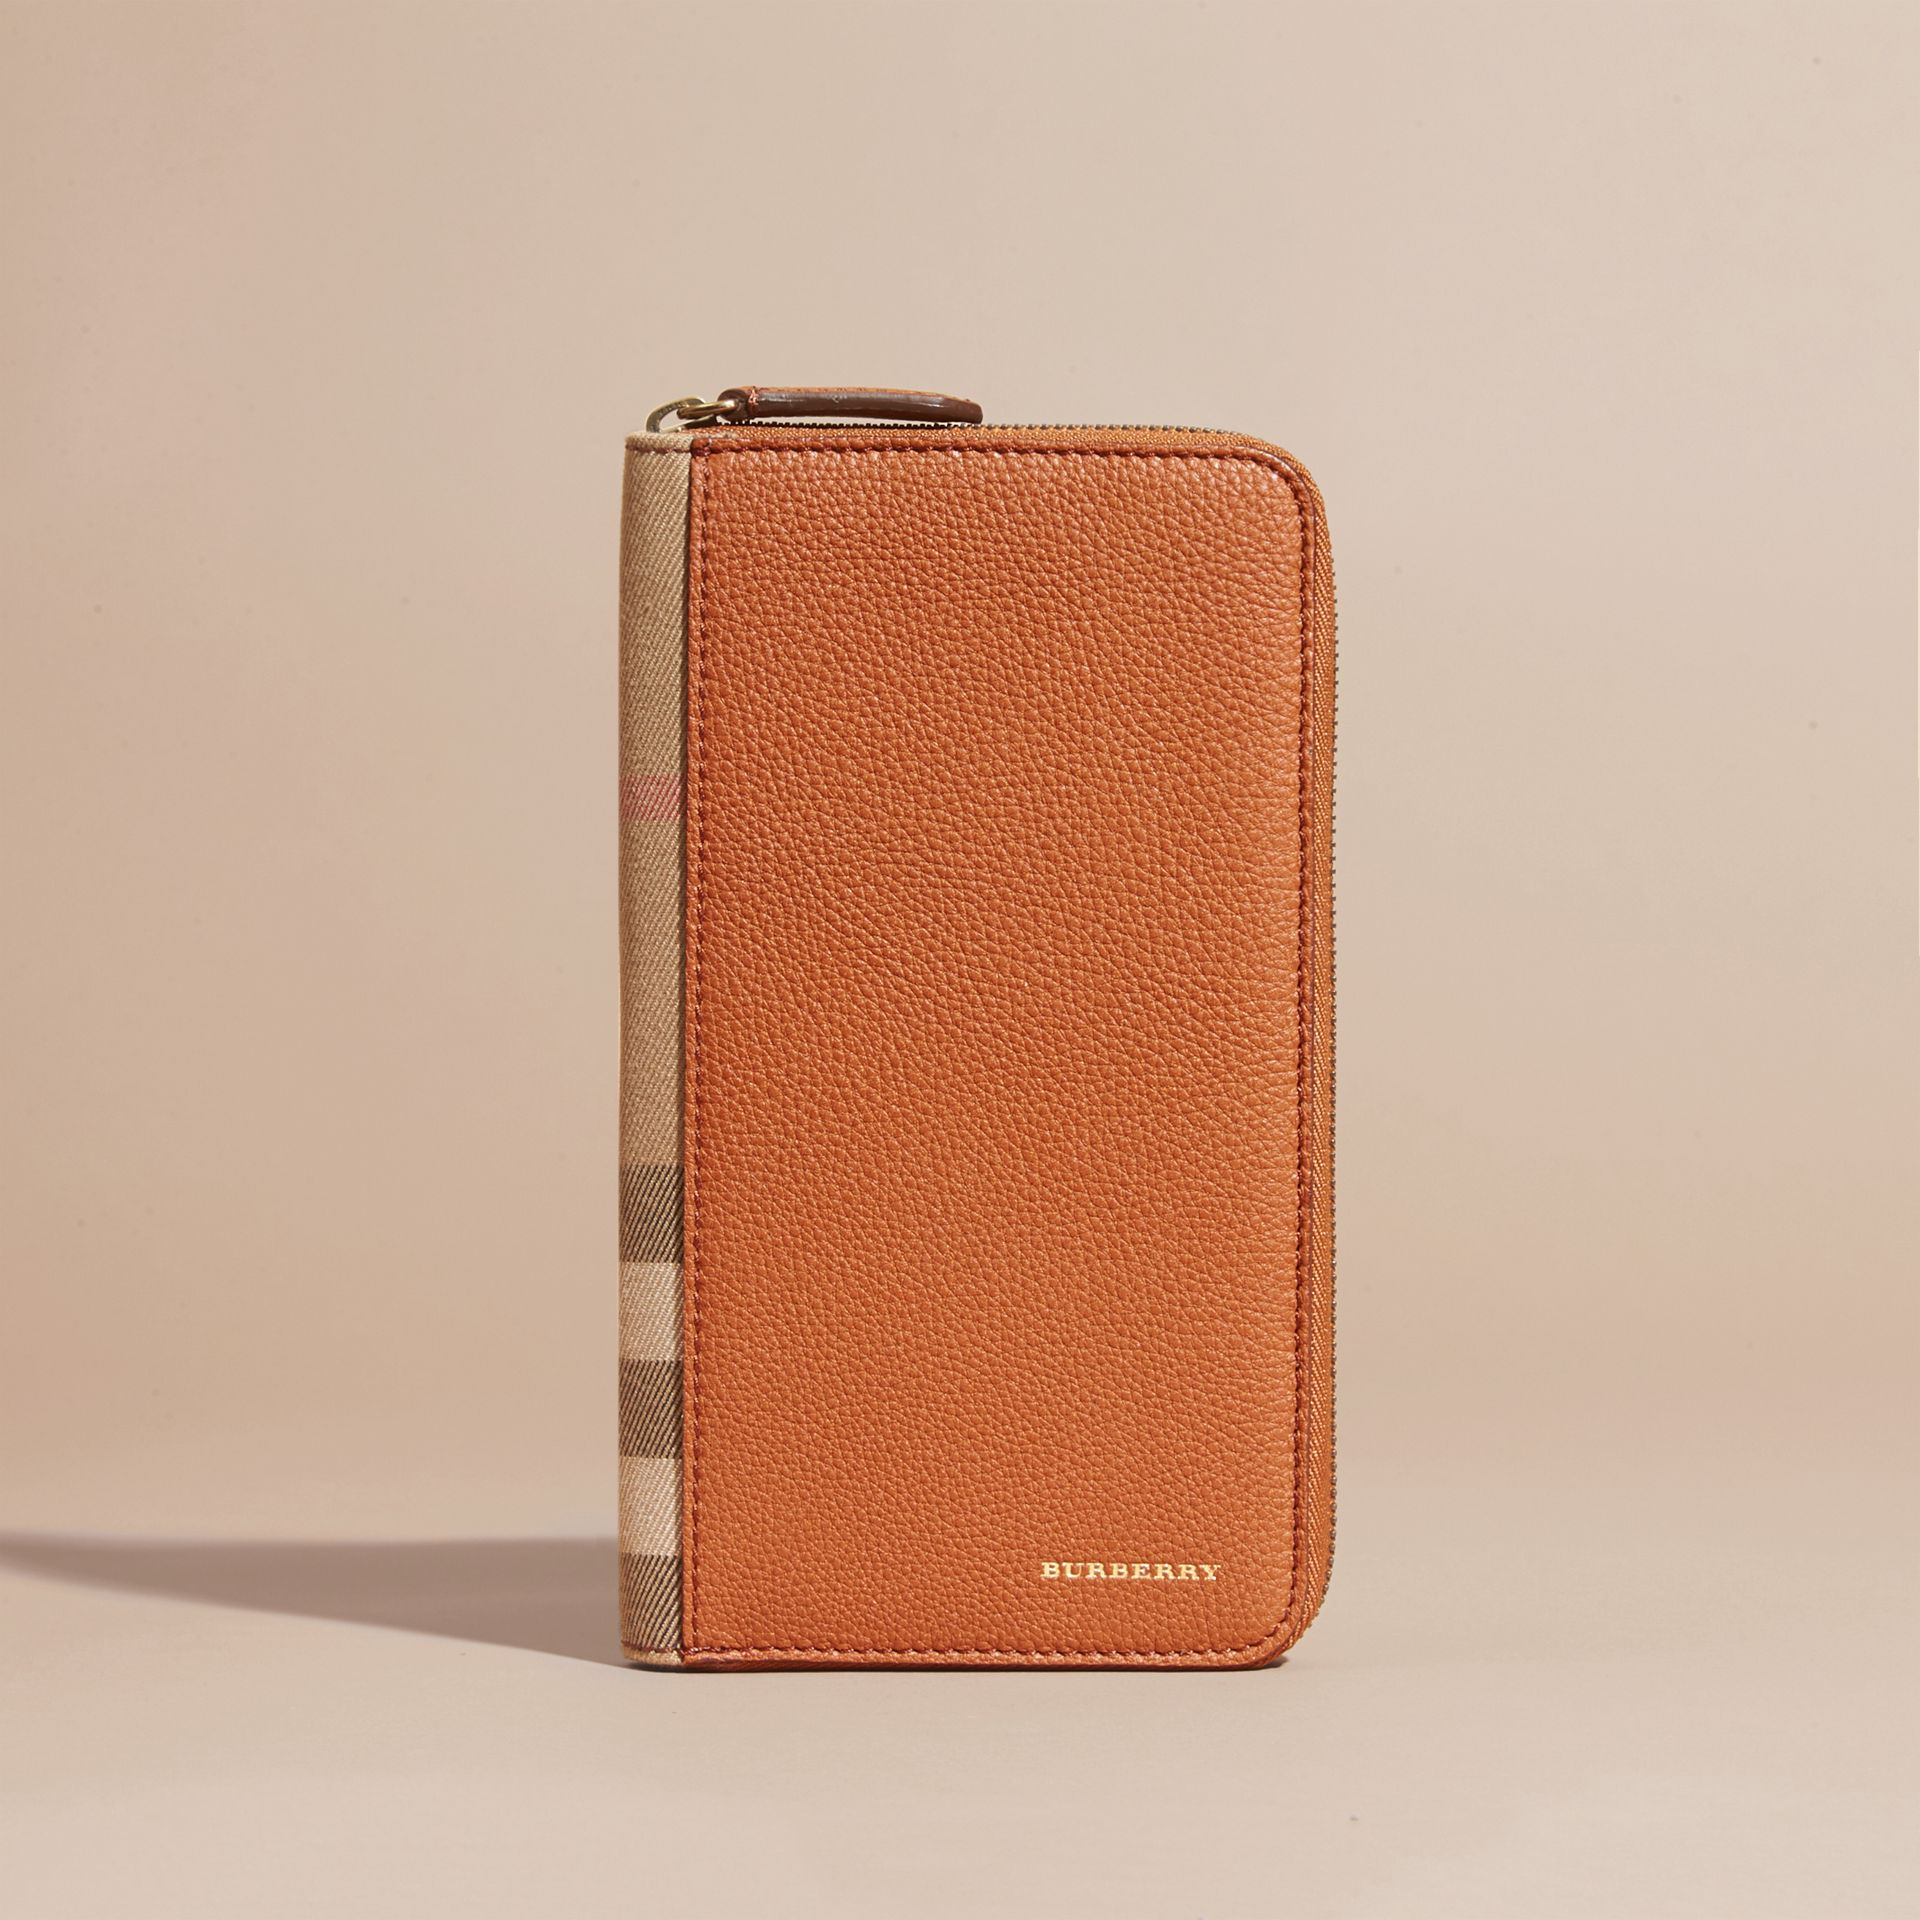 House Check and Grainy Leather Ziparound Wallet Russet - gallery image 2